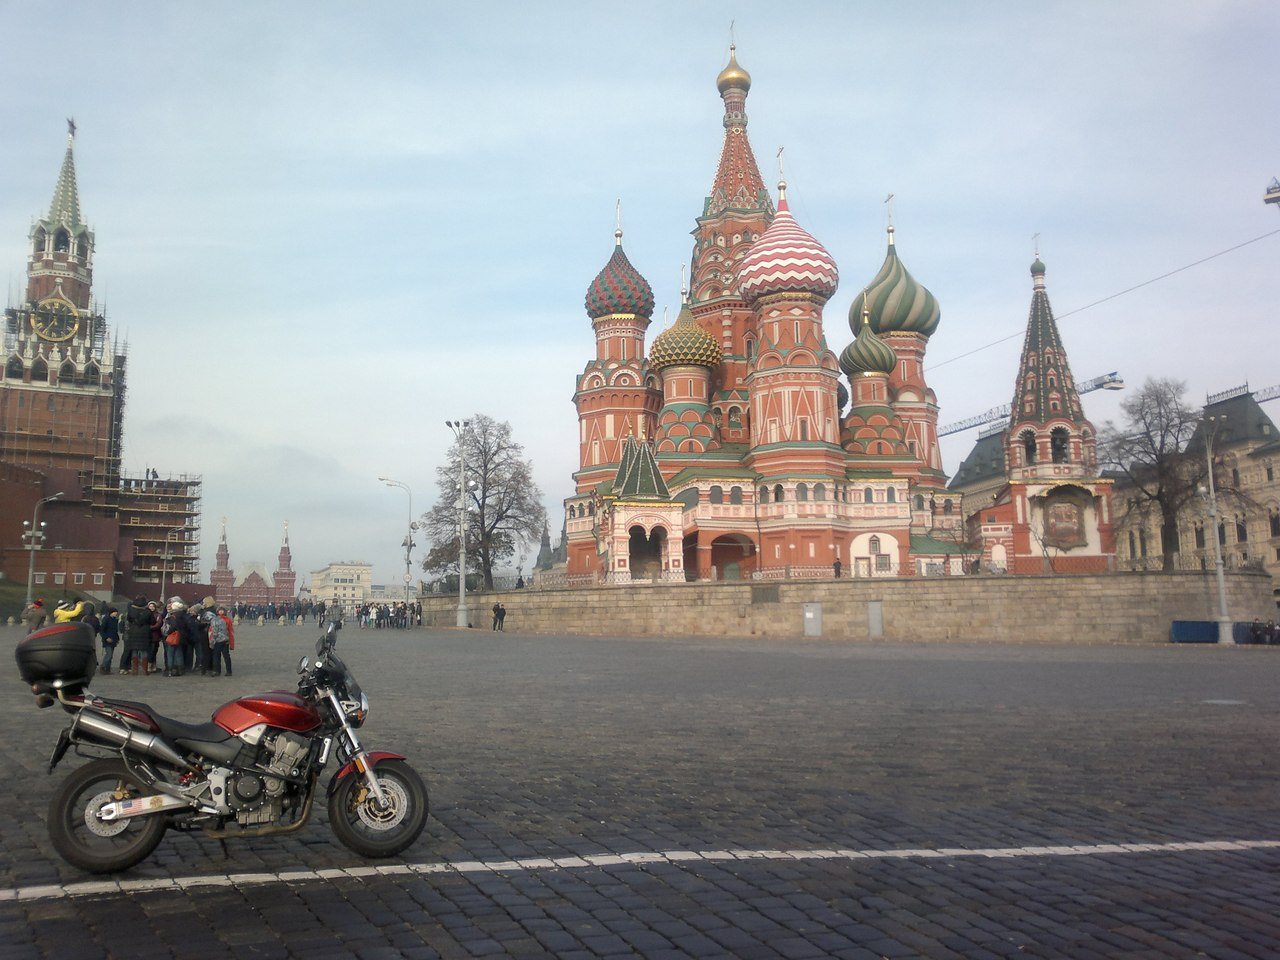 Cbr500r Wiring Diagram Honda Sky Cbr 500 R 2014 Abs Need Forumfrom Moscow With Love